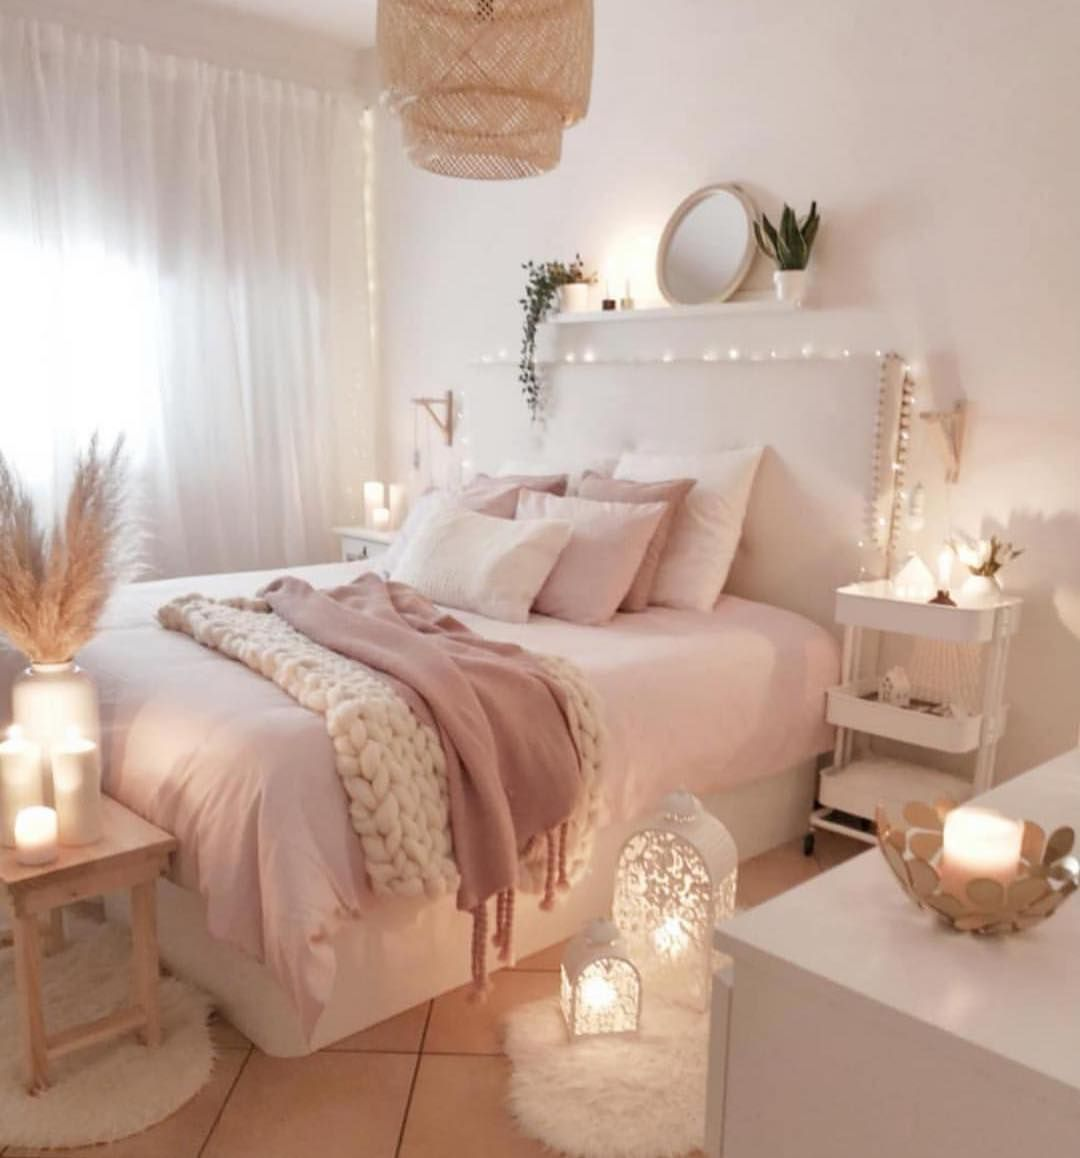 inspi_deco Looking for a new home ? Airbnb is the solution ! Click